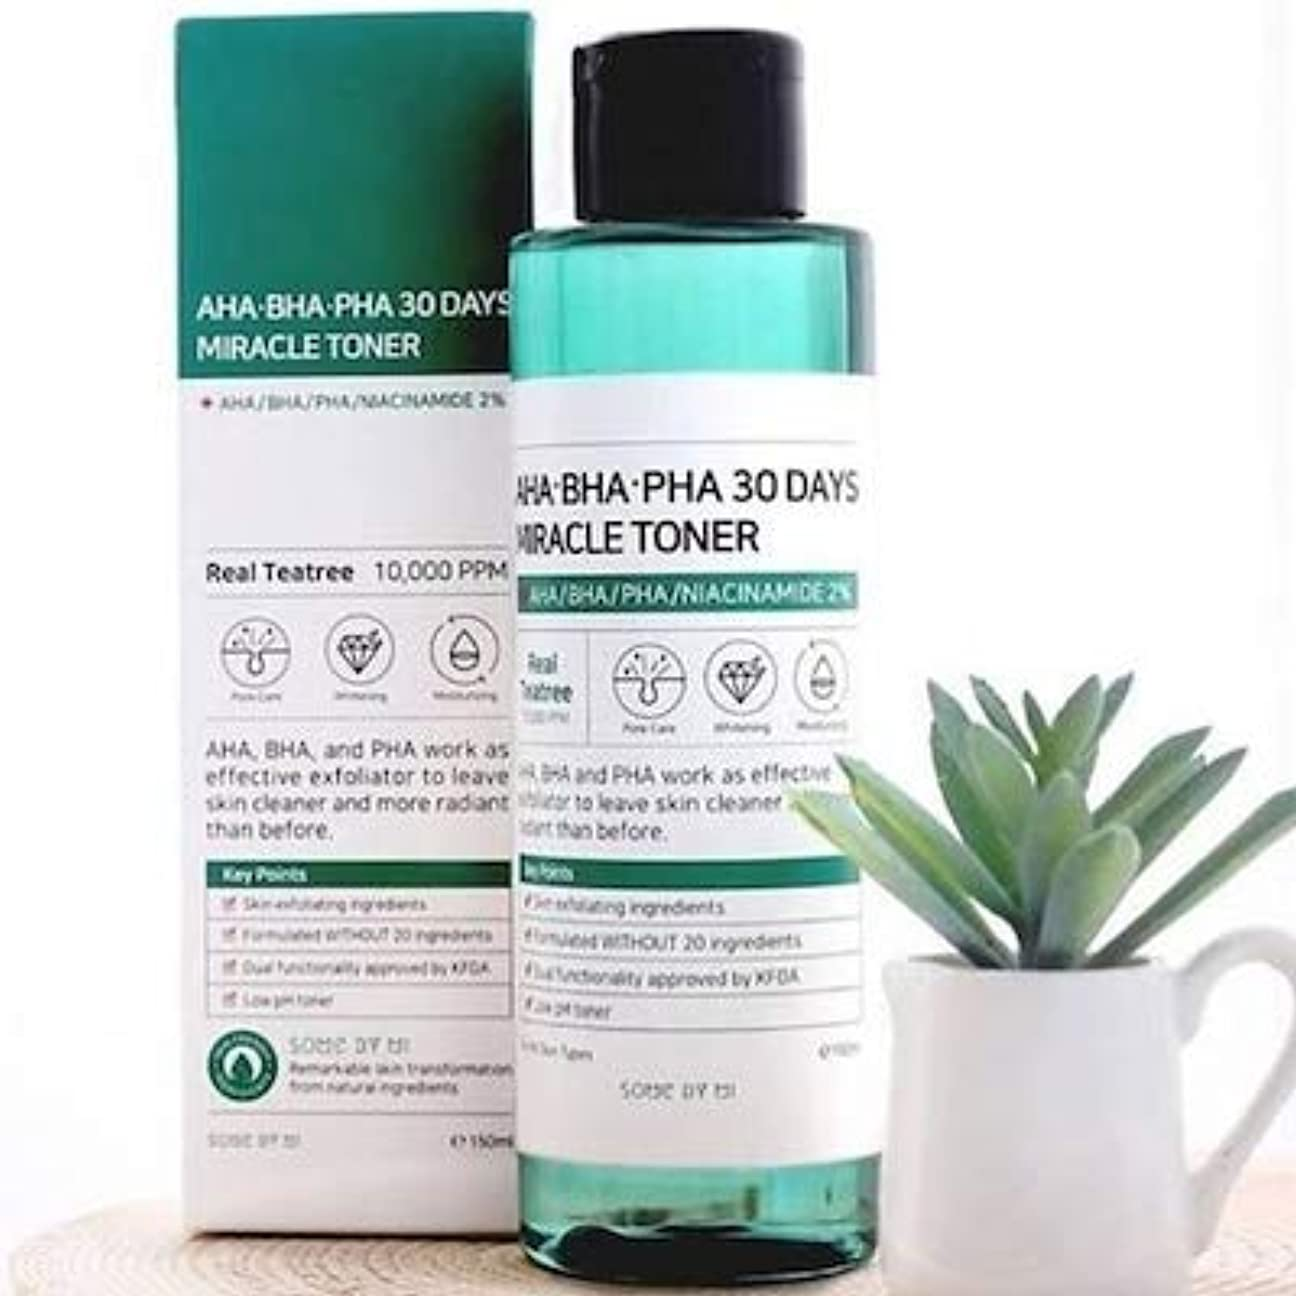 素晴らしい良い多くの音楽を聴く謝るSomebymi AHA. BHA. PHA 30Days Miracle Toner 150ml/Korea Cosmetic